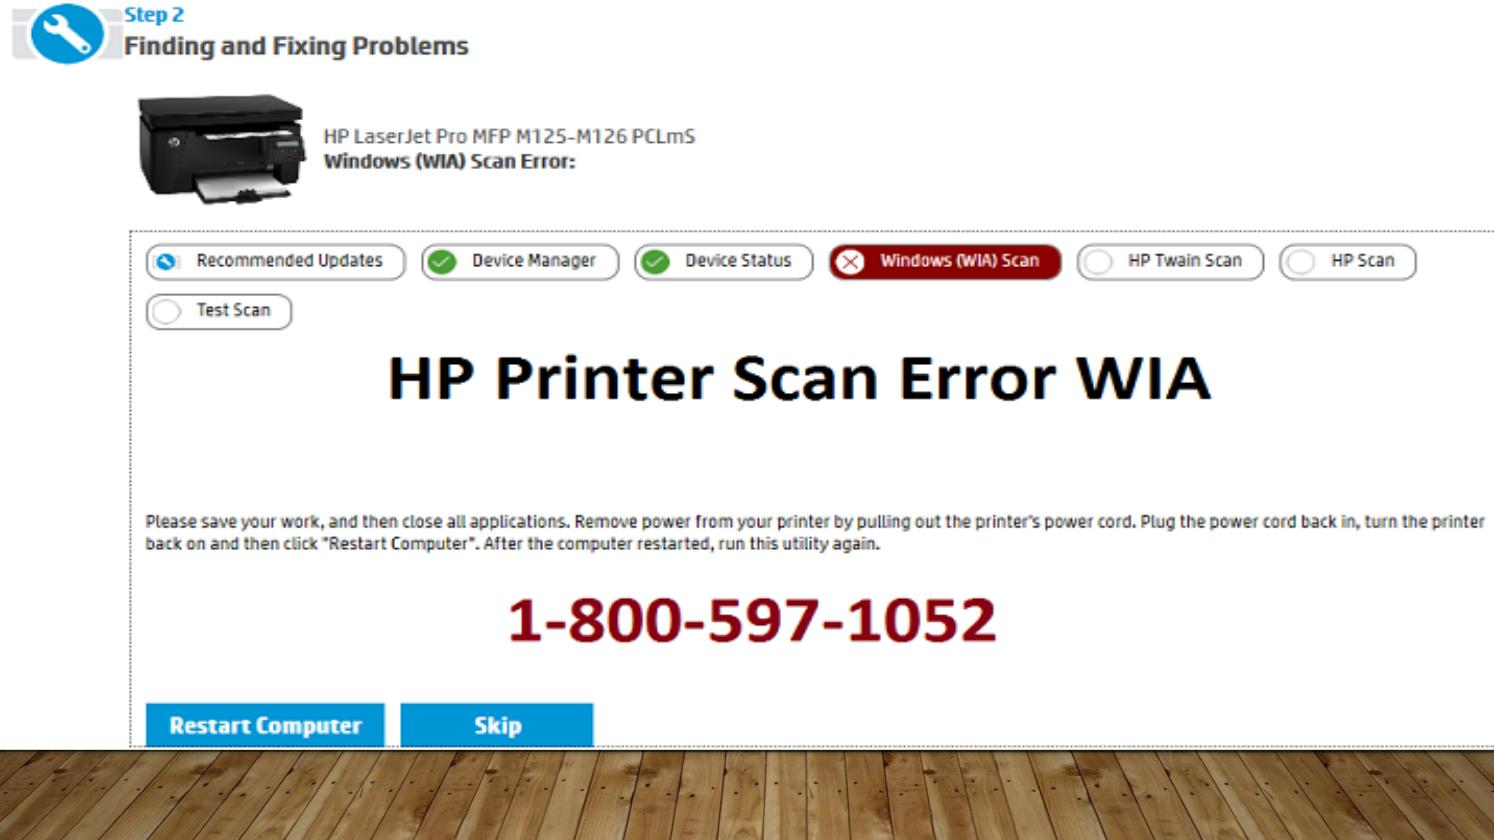 How To Fix HP Printer Scan Error WIA? 1-800-597-1052 by